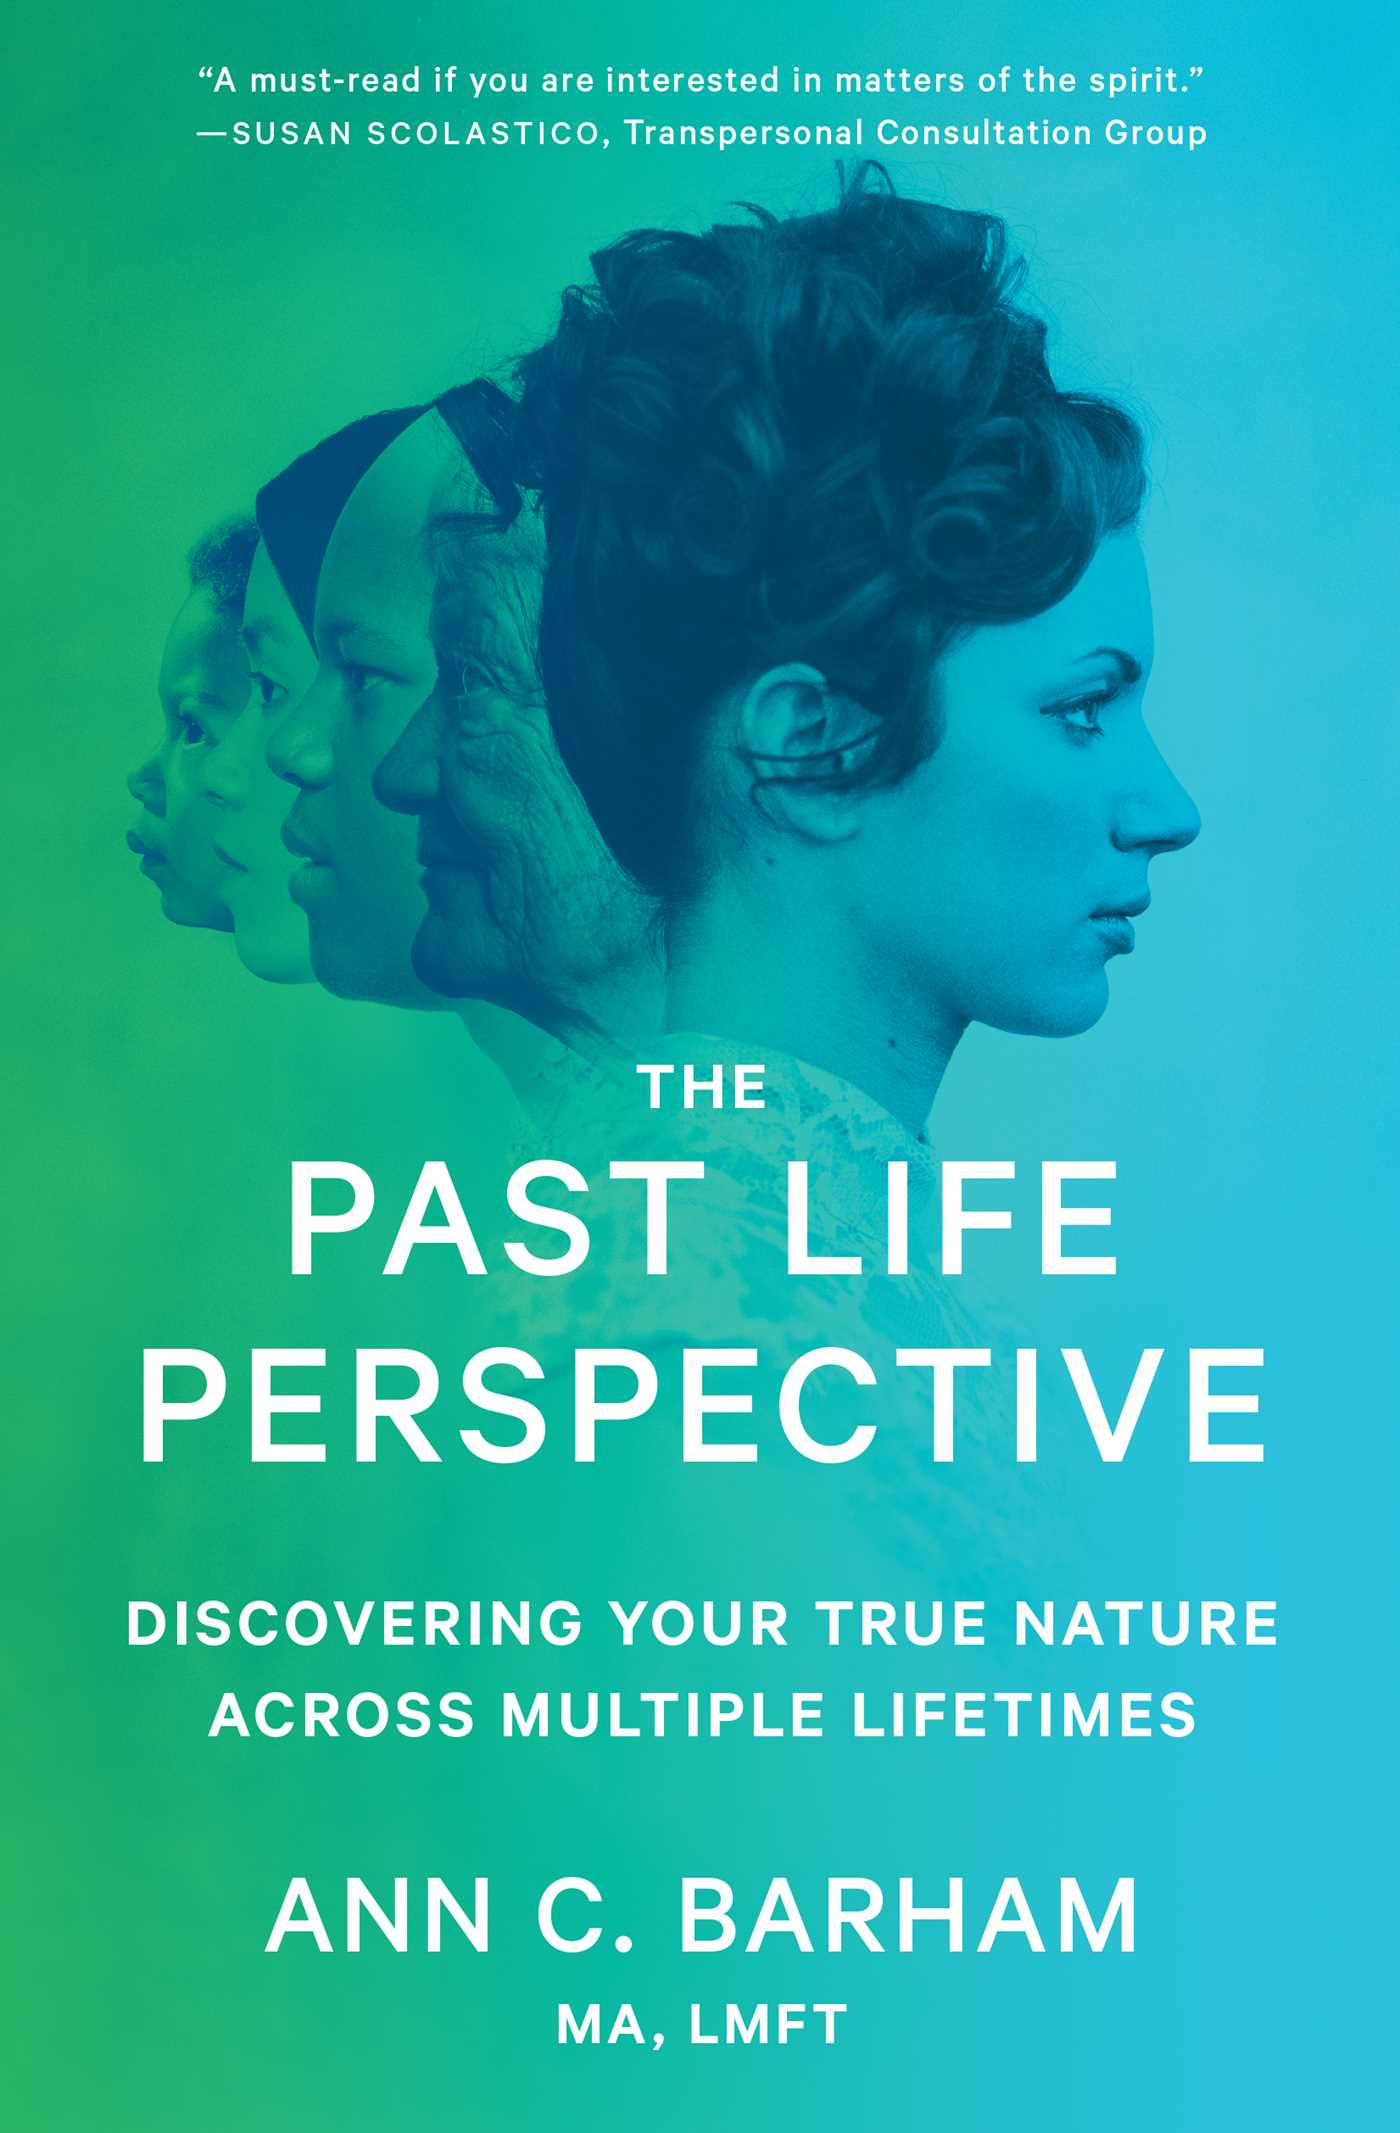 The past life perspective 9781982107697 hr